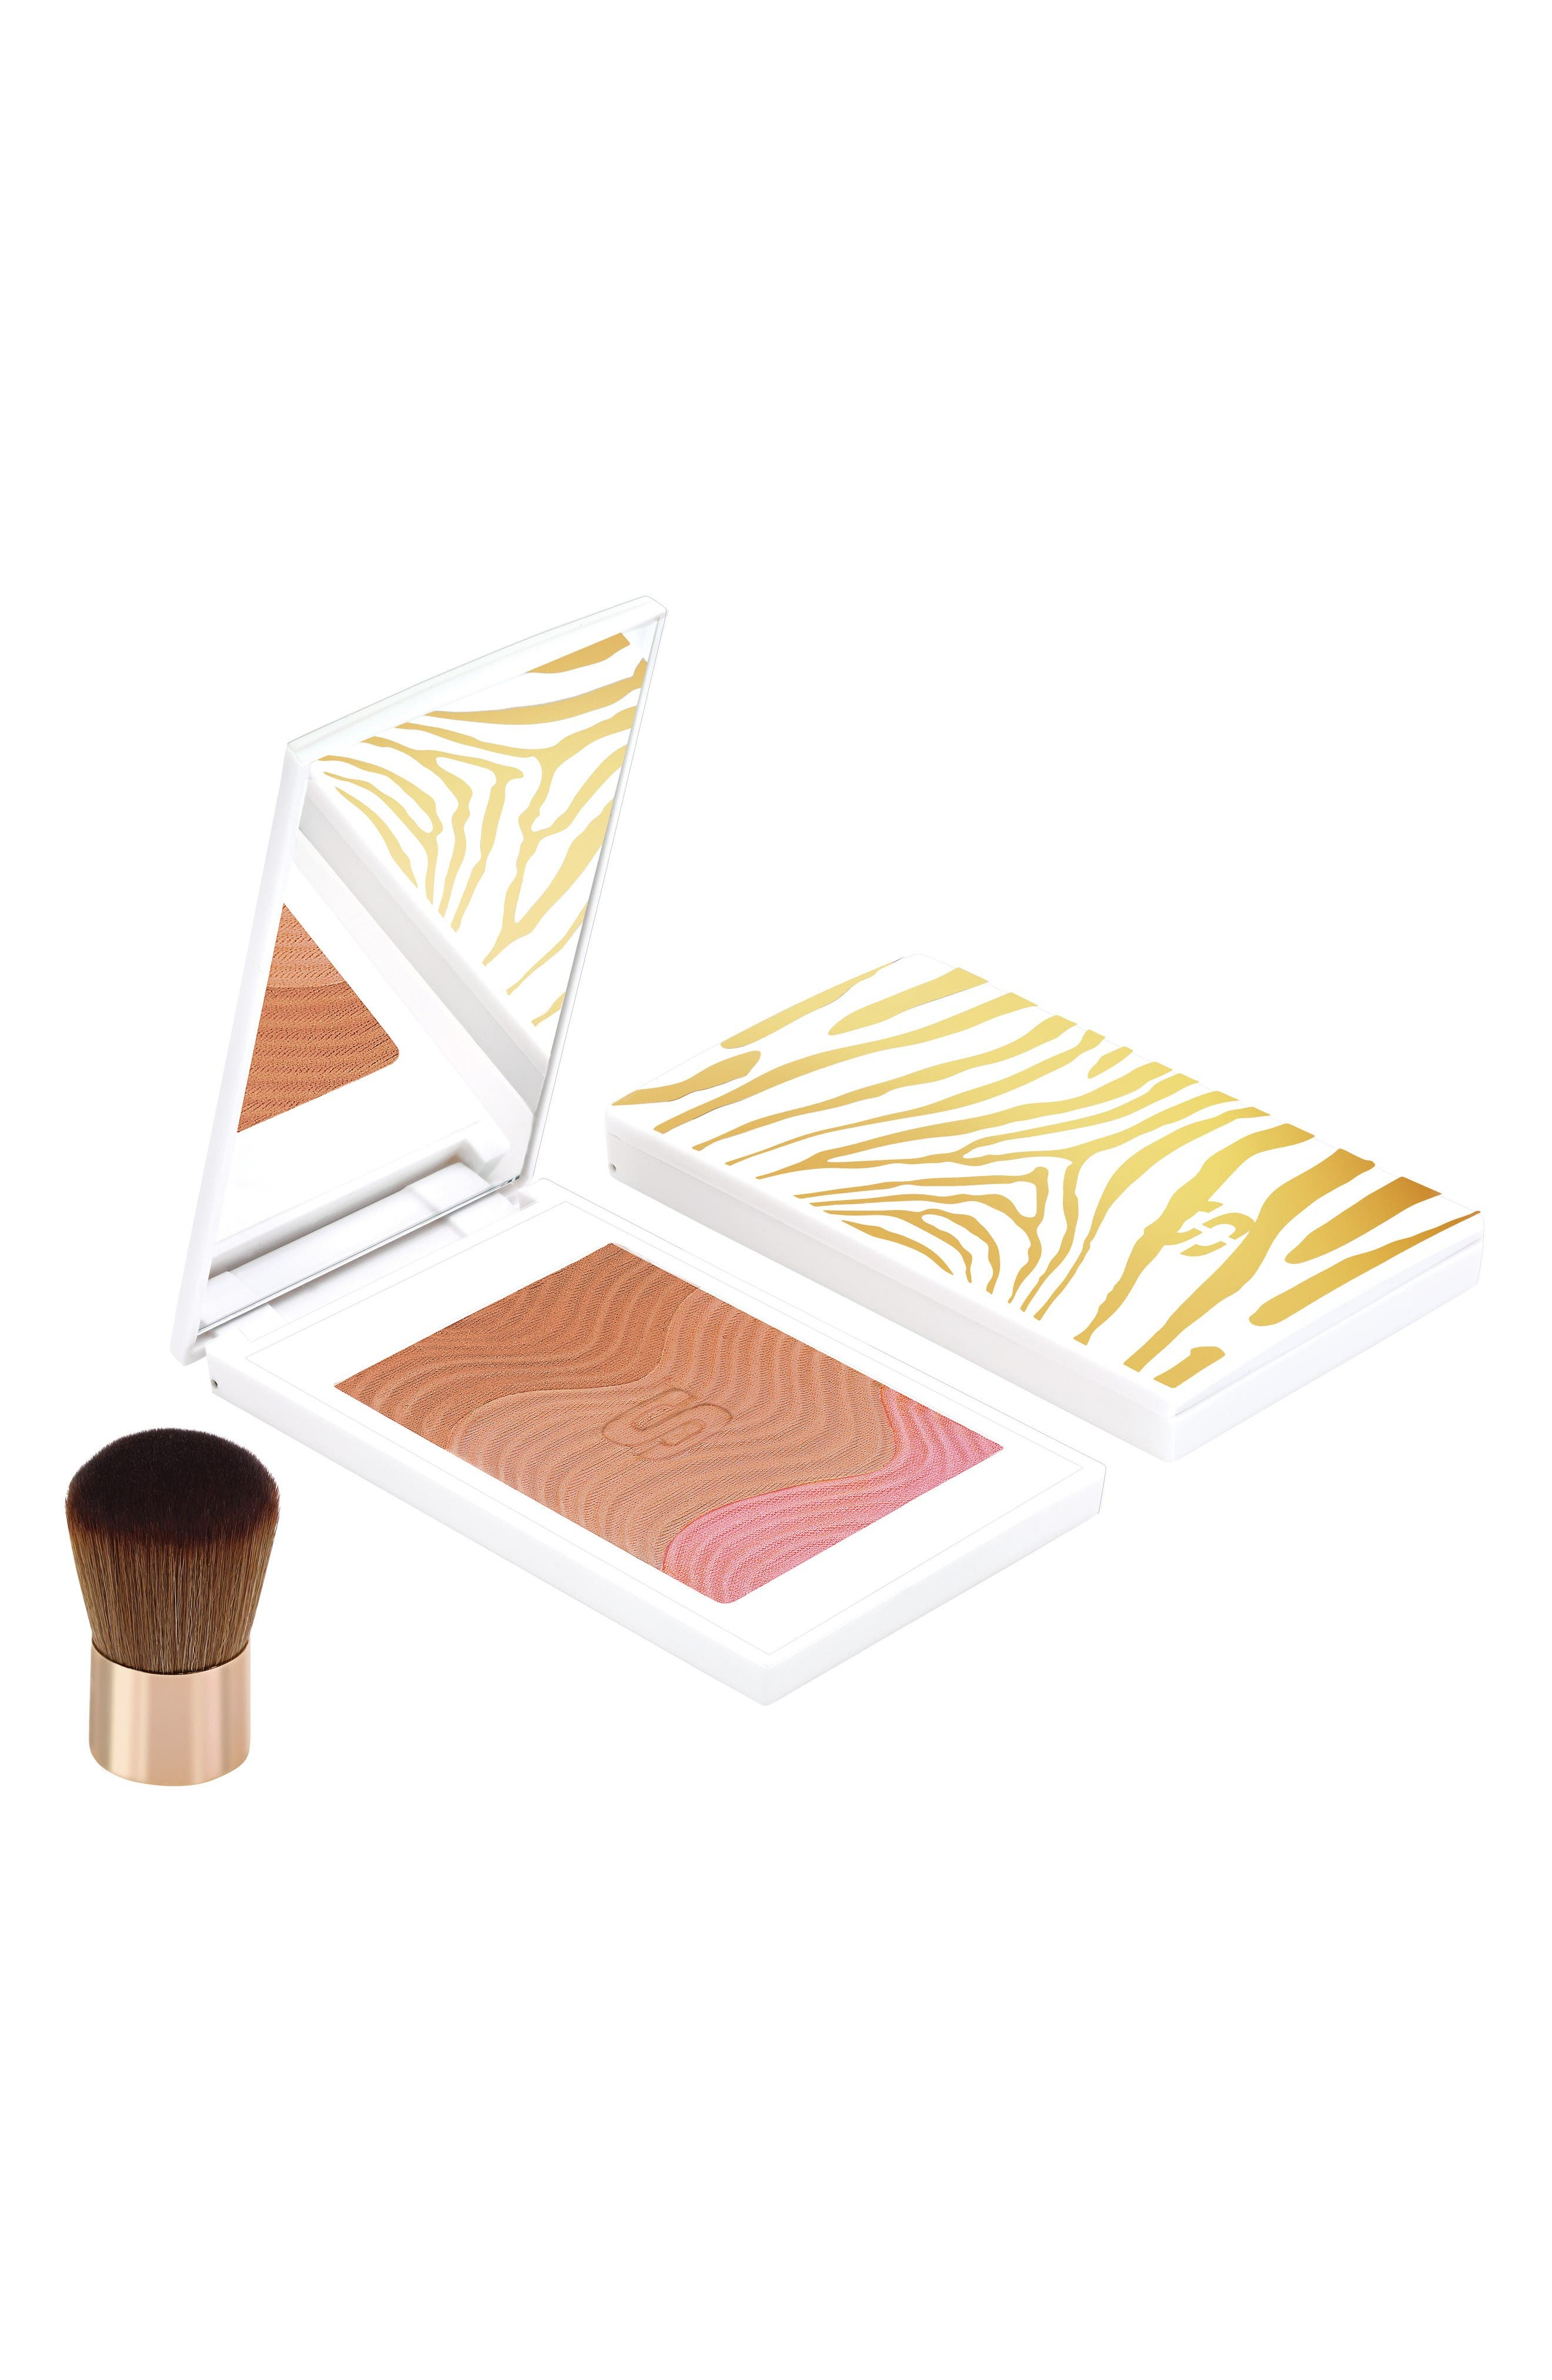 Phyto-Touche Sun Glow Powder,                         Main,                         color, Miel Canelle